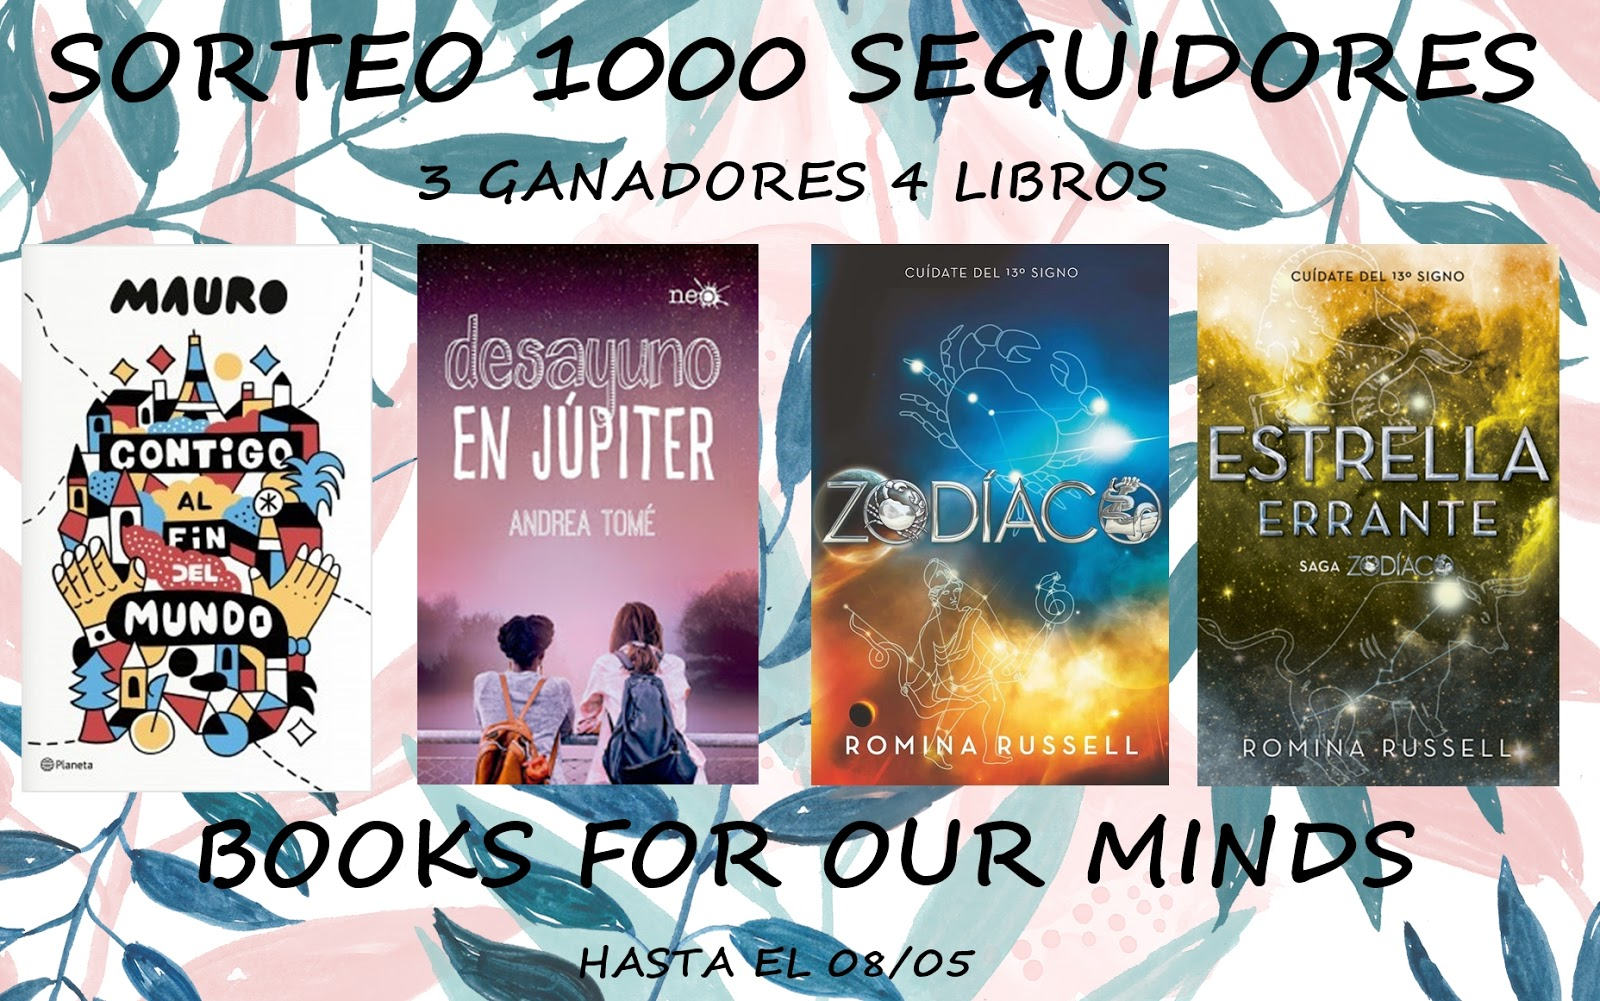 Sorteo Books for our minds